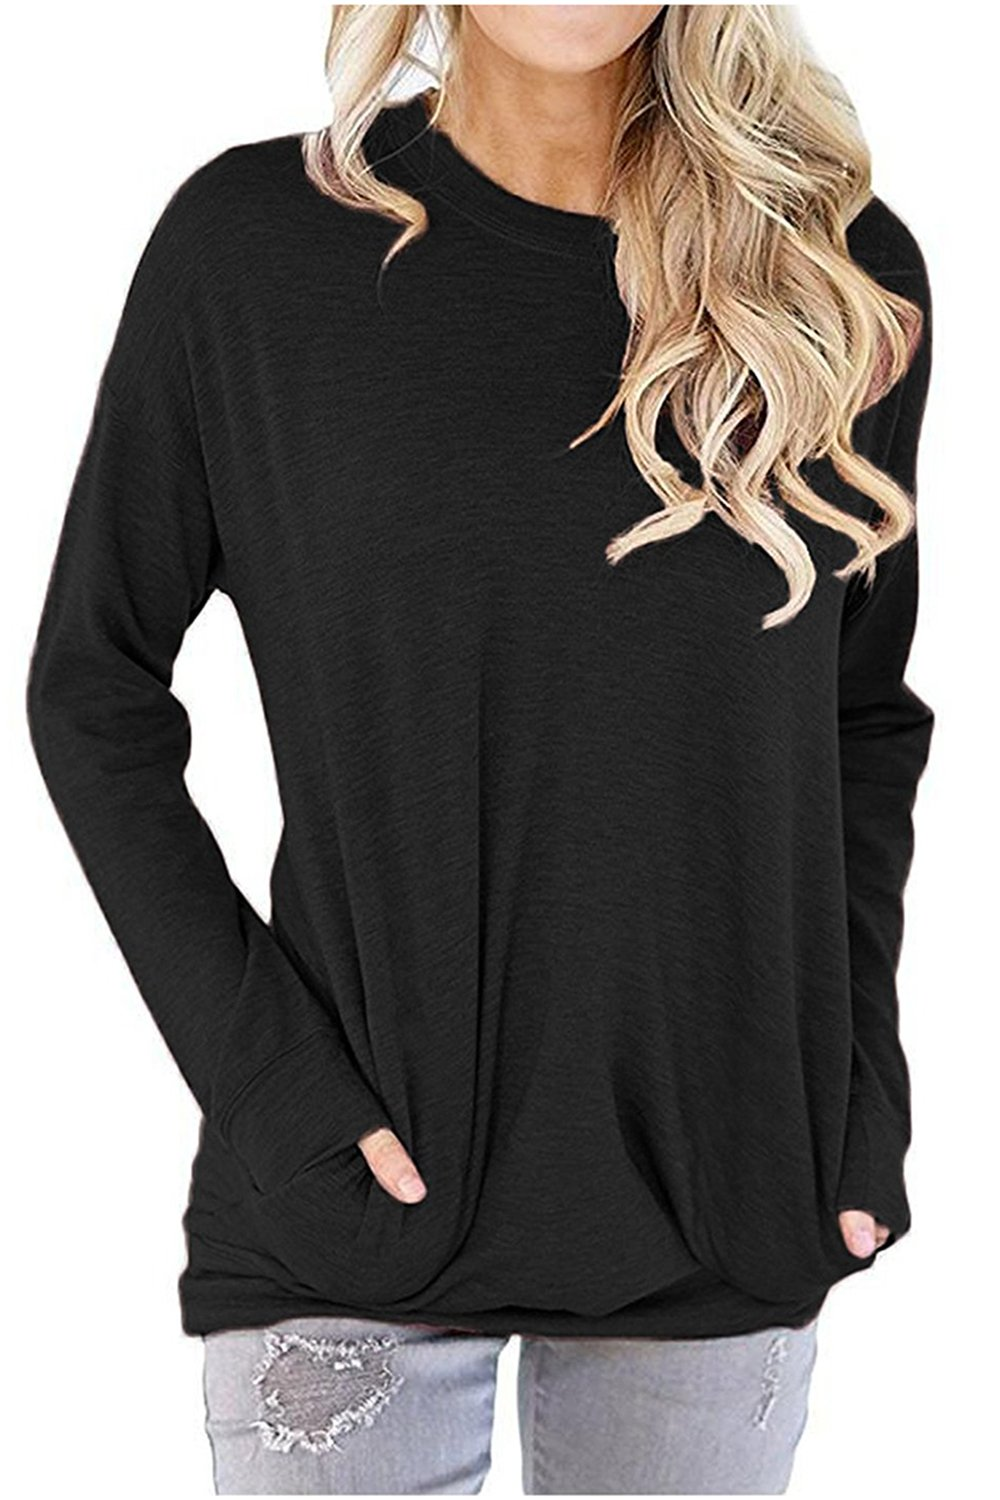 RJXDLT Women's Casual Long Sleeve Round Neck Sweatshirt Loose Soft with Pockets Pullover Blouse Tops Shirt Tunics Dark Black XL